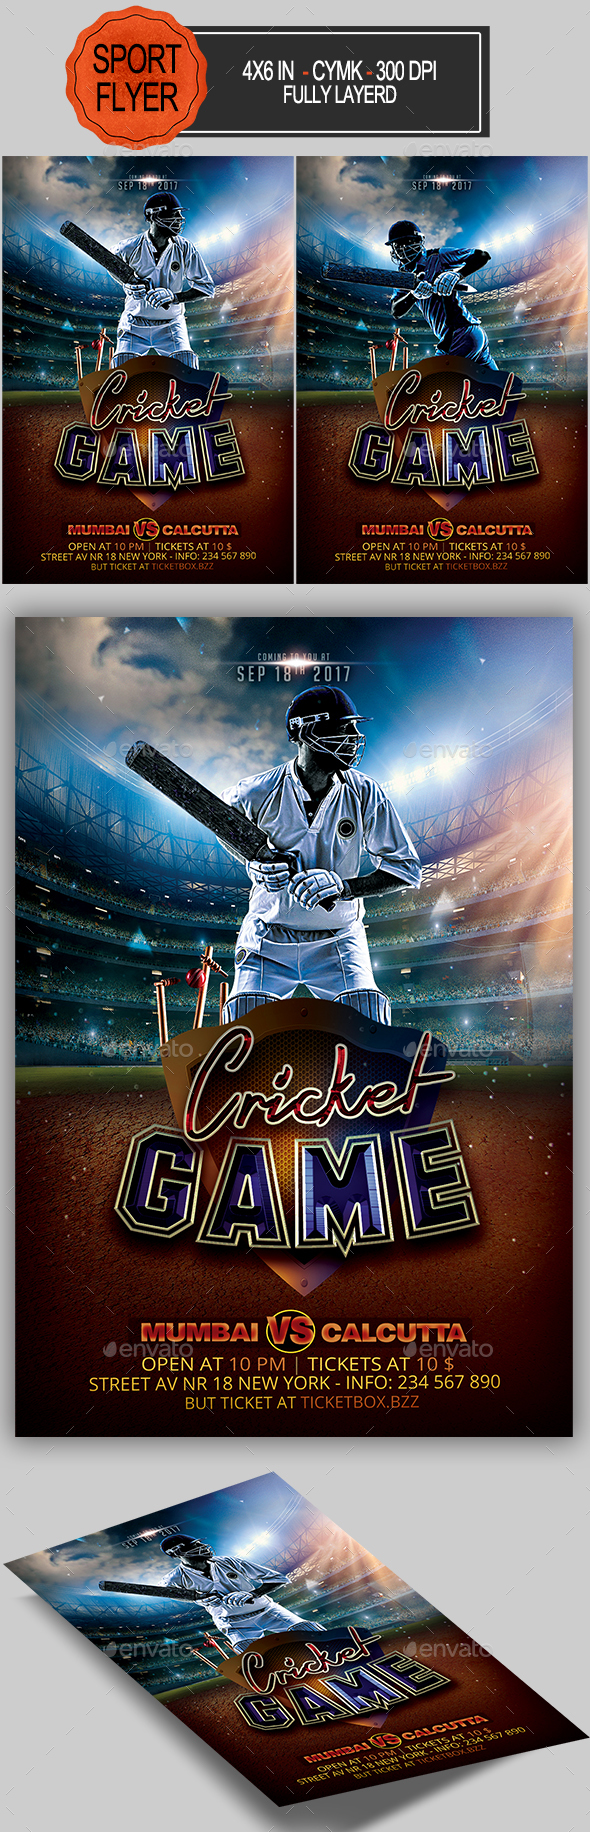 Cricket Game Flyer - Sports Events